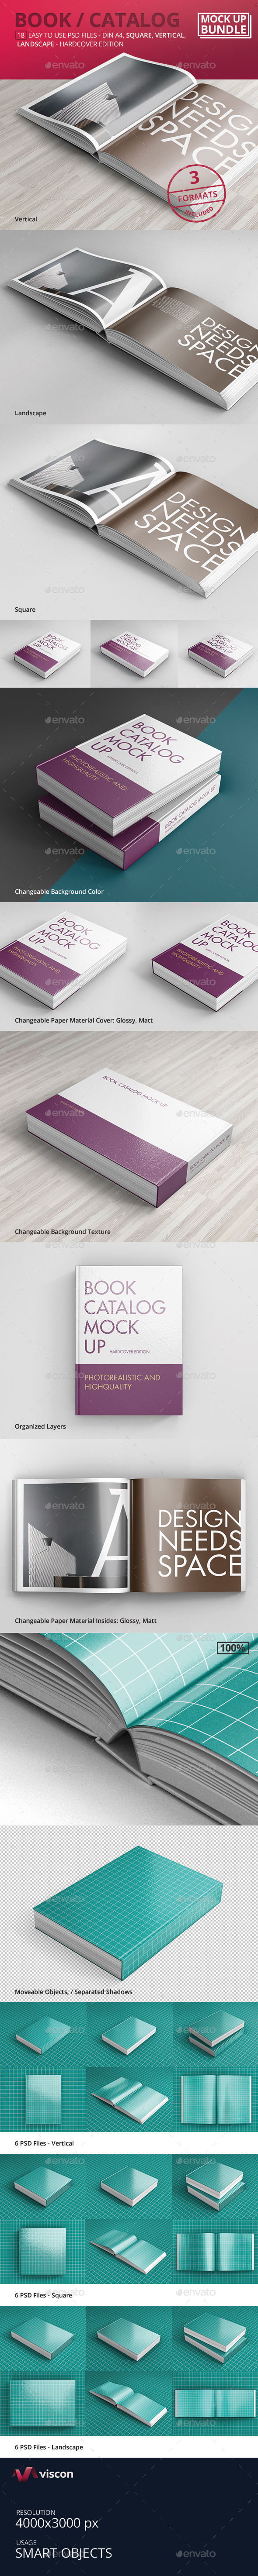 GraphicRiver Book Catalog Mock-Ups Bundle Hardcover Edition 10034228